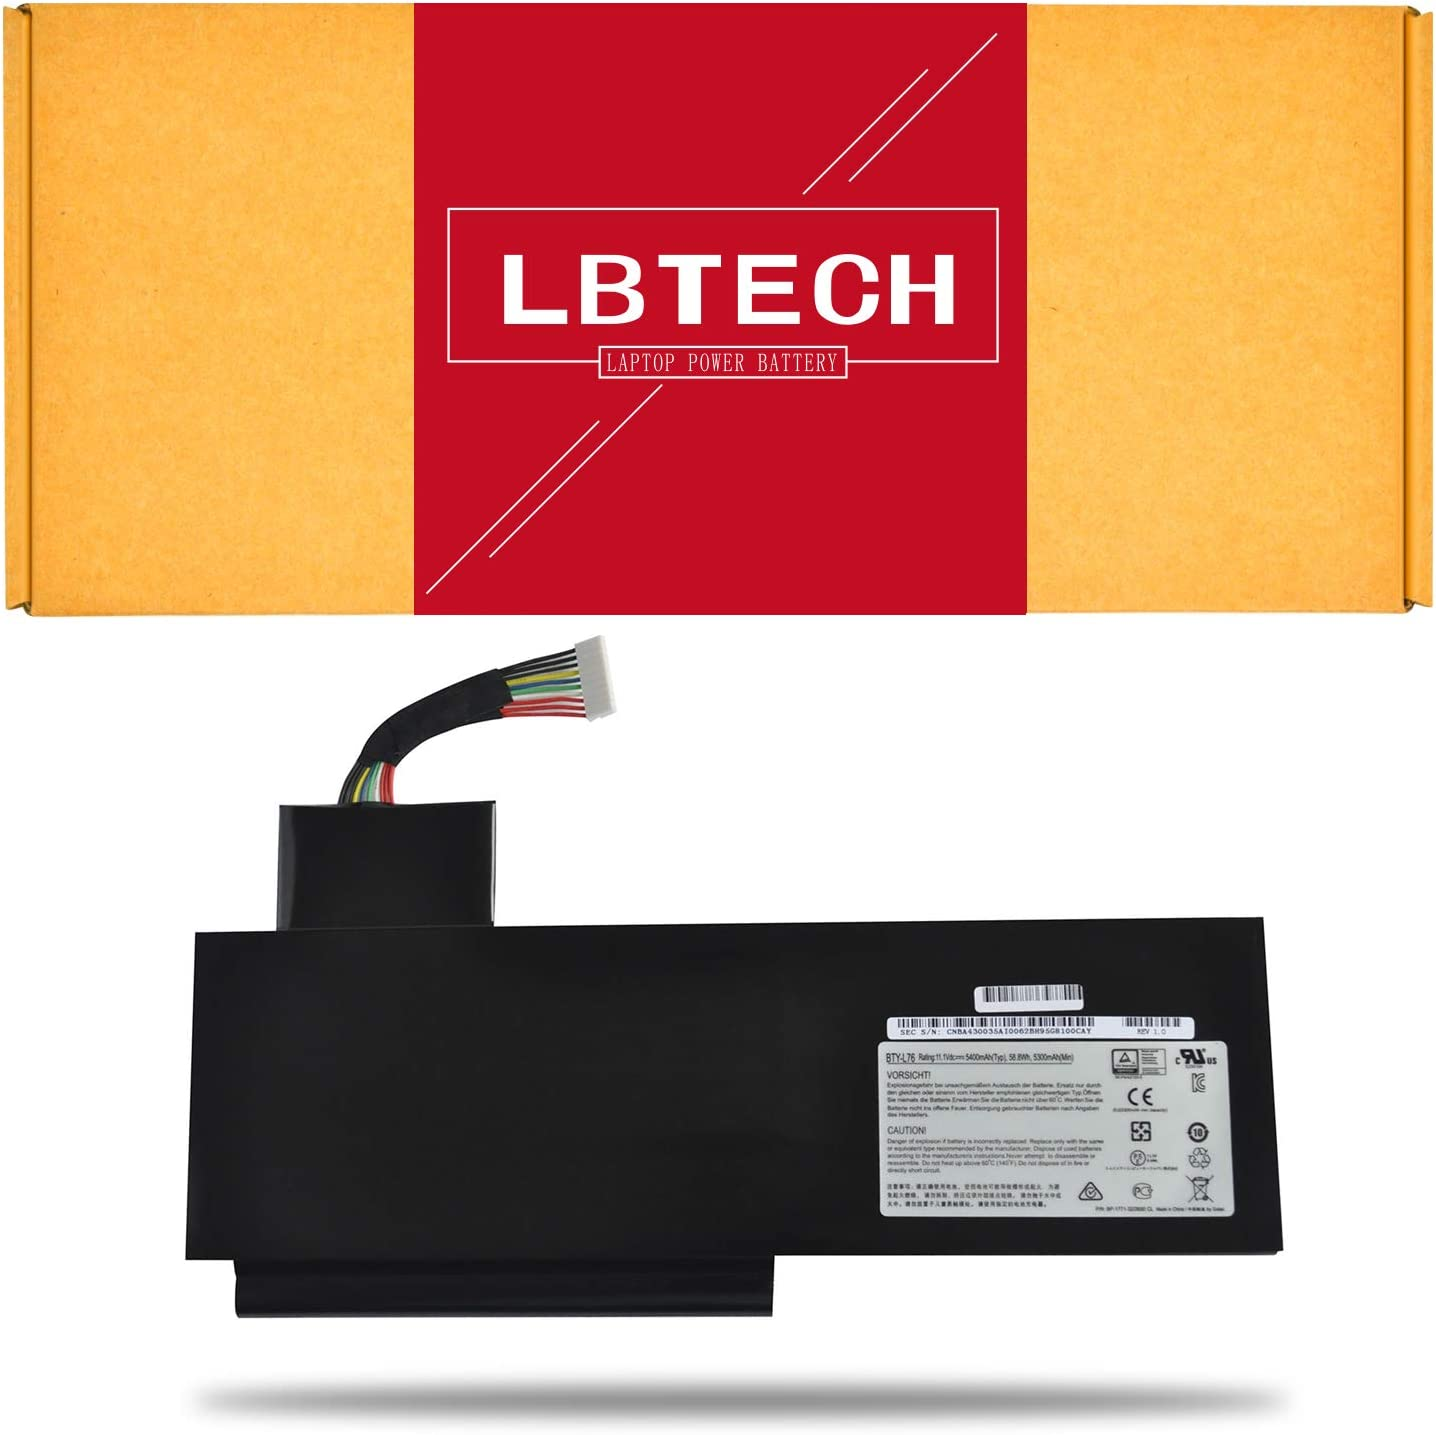 Amazon.com: LBTECH BTY-L76 Compatible Laptop Battery Replacement for MSI  GS70 WS72 GS72 Medion Erazer X7615 X7613 Schenker XMG C703 Series 11.1V  58.8Wh: Home Audio & Theater